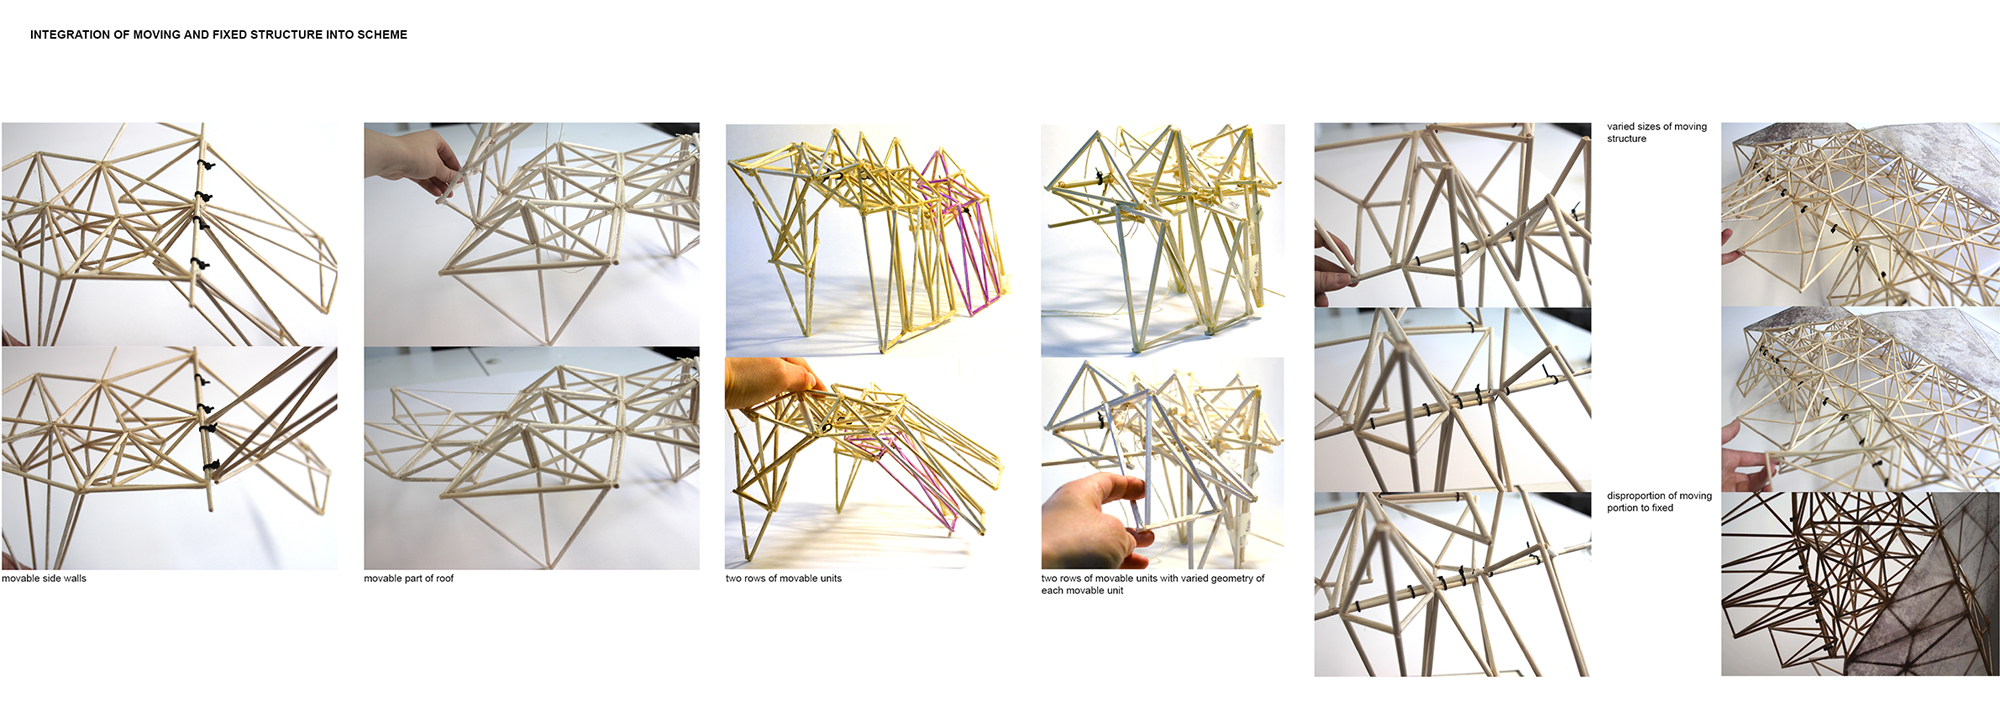 architectural research papers competition International architectural research competition this international architectural competition winners of architectural research papers.